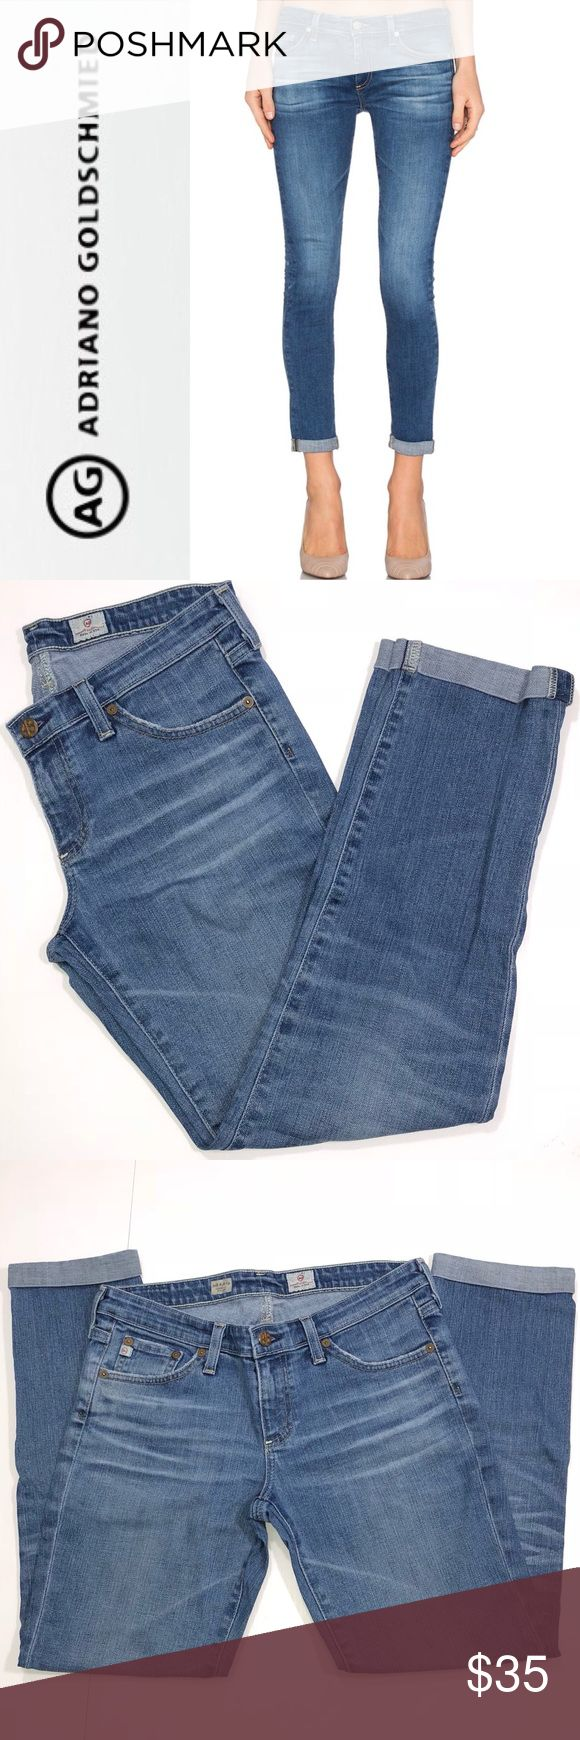 """AG Stilt Roll-Up Cigarette Jeans ✔️98% Cotton•2% Polyurethane ✔️Inseam: 26.75"""" ✔️No Holes, Stains or Damages ✔️1624-9 Ag Adriano Goldschmied Jeans"""